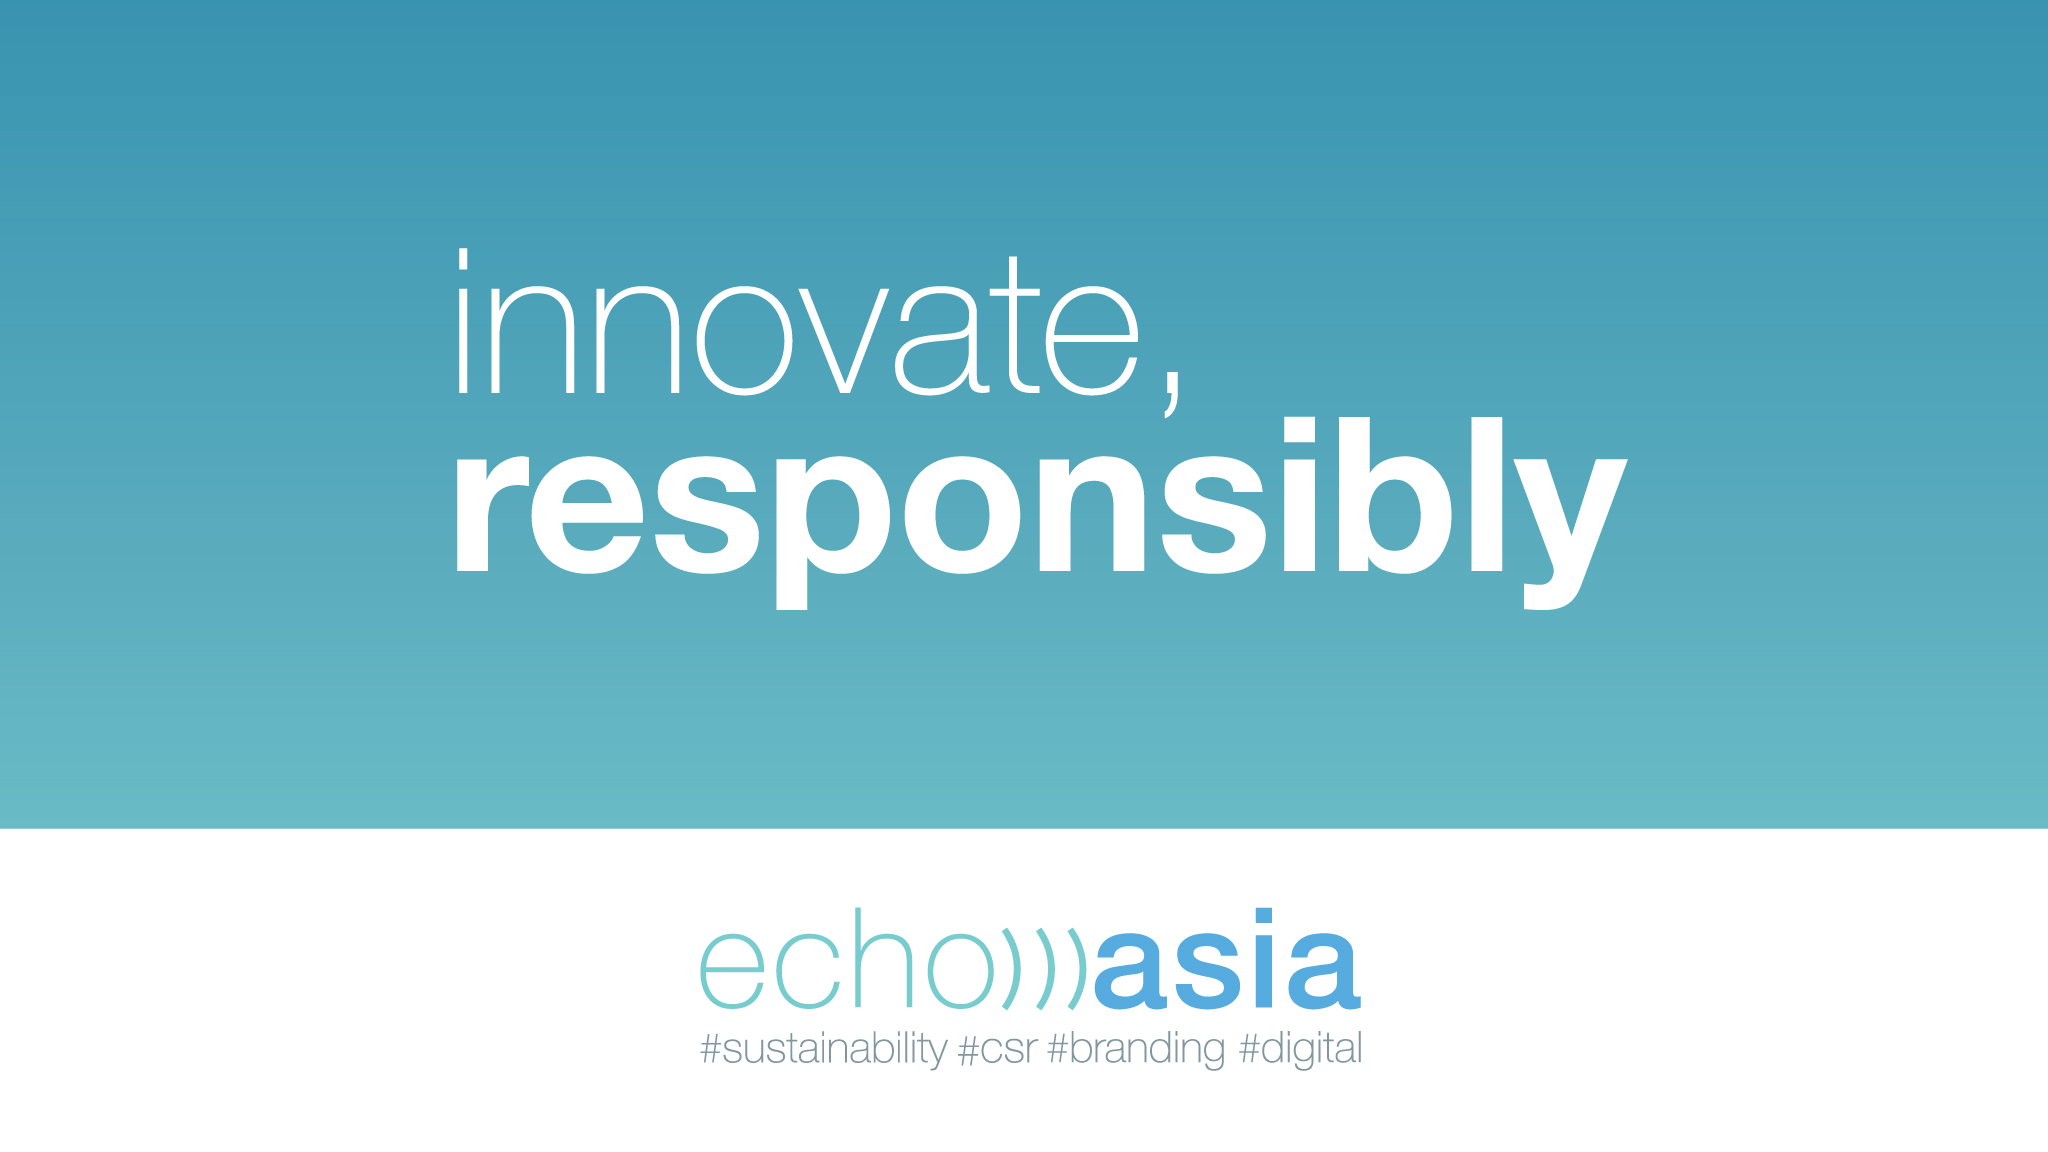 echo asia innovate responsibly